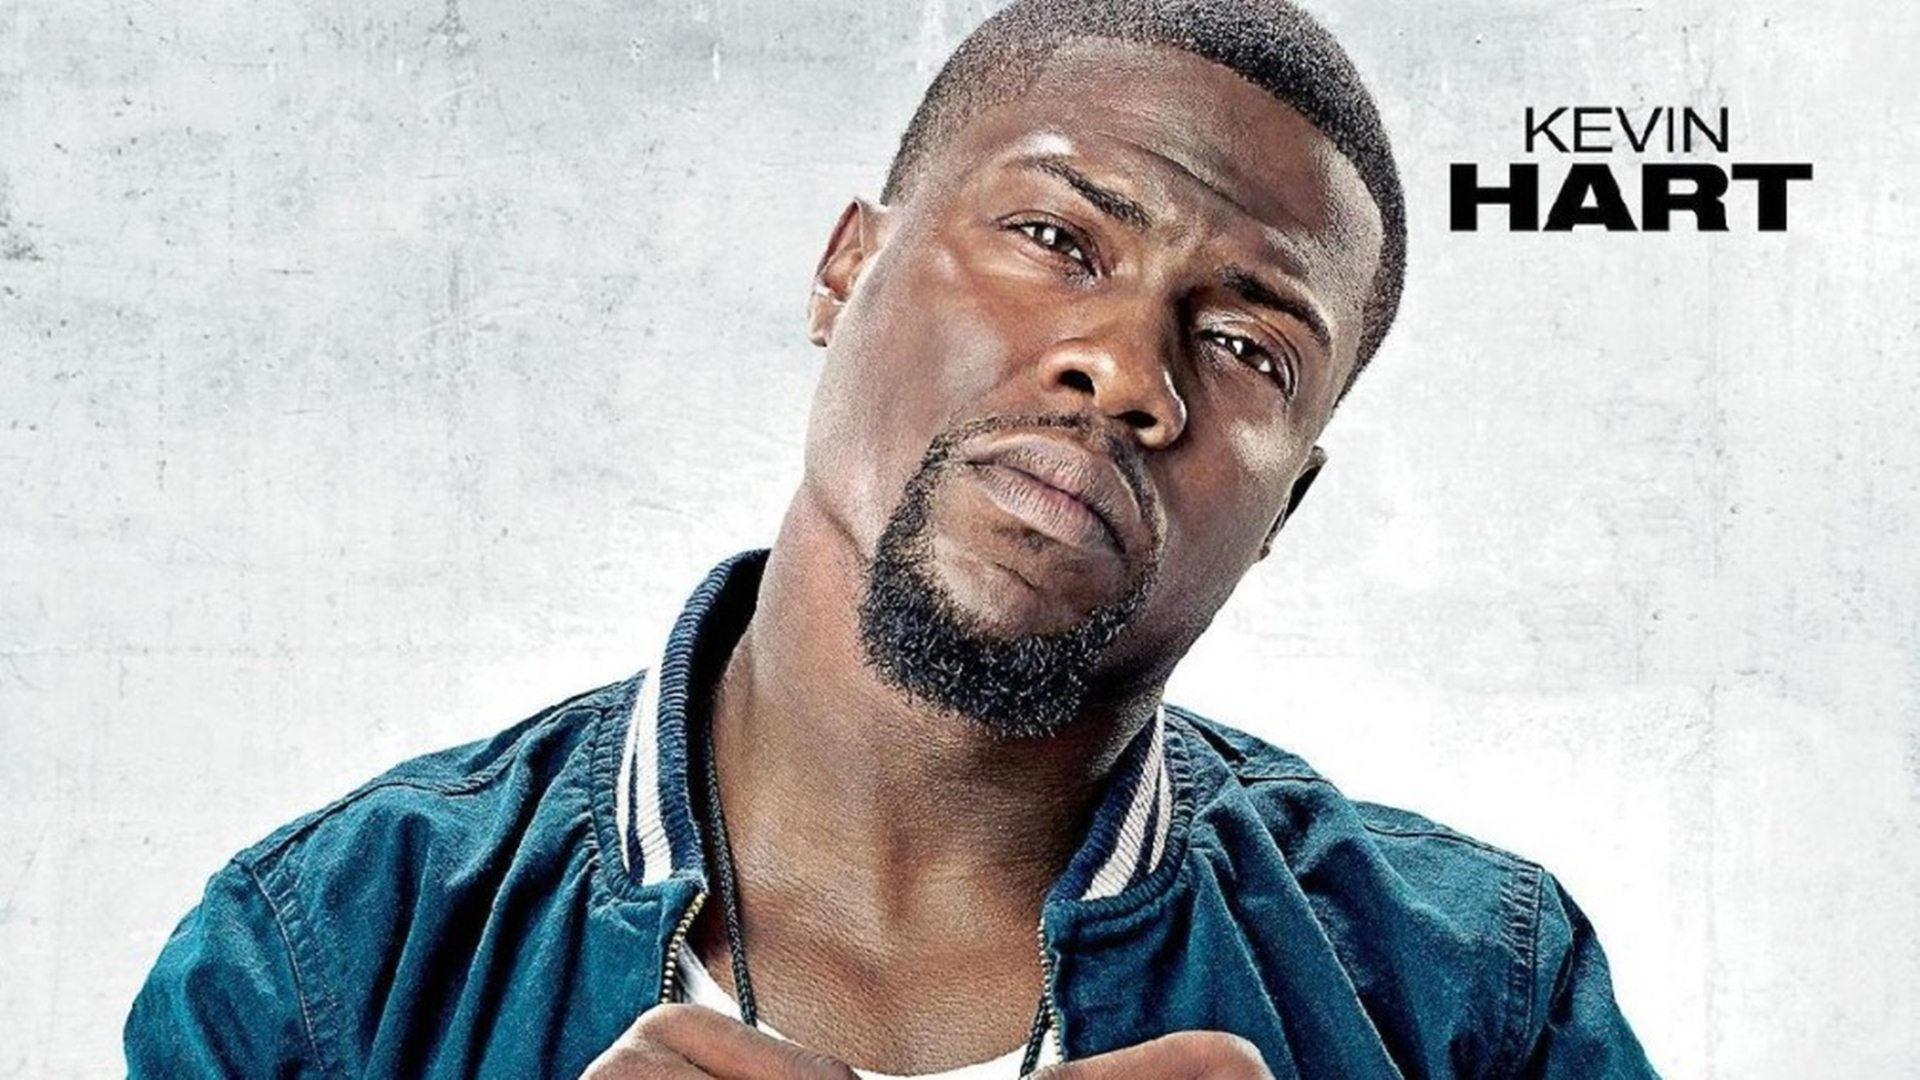 Kevin Hart 13